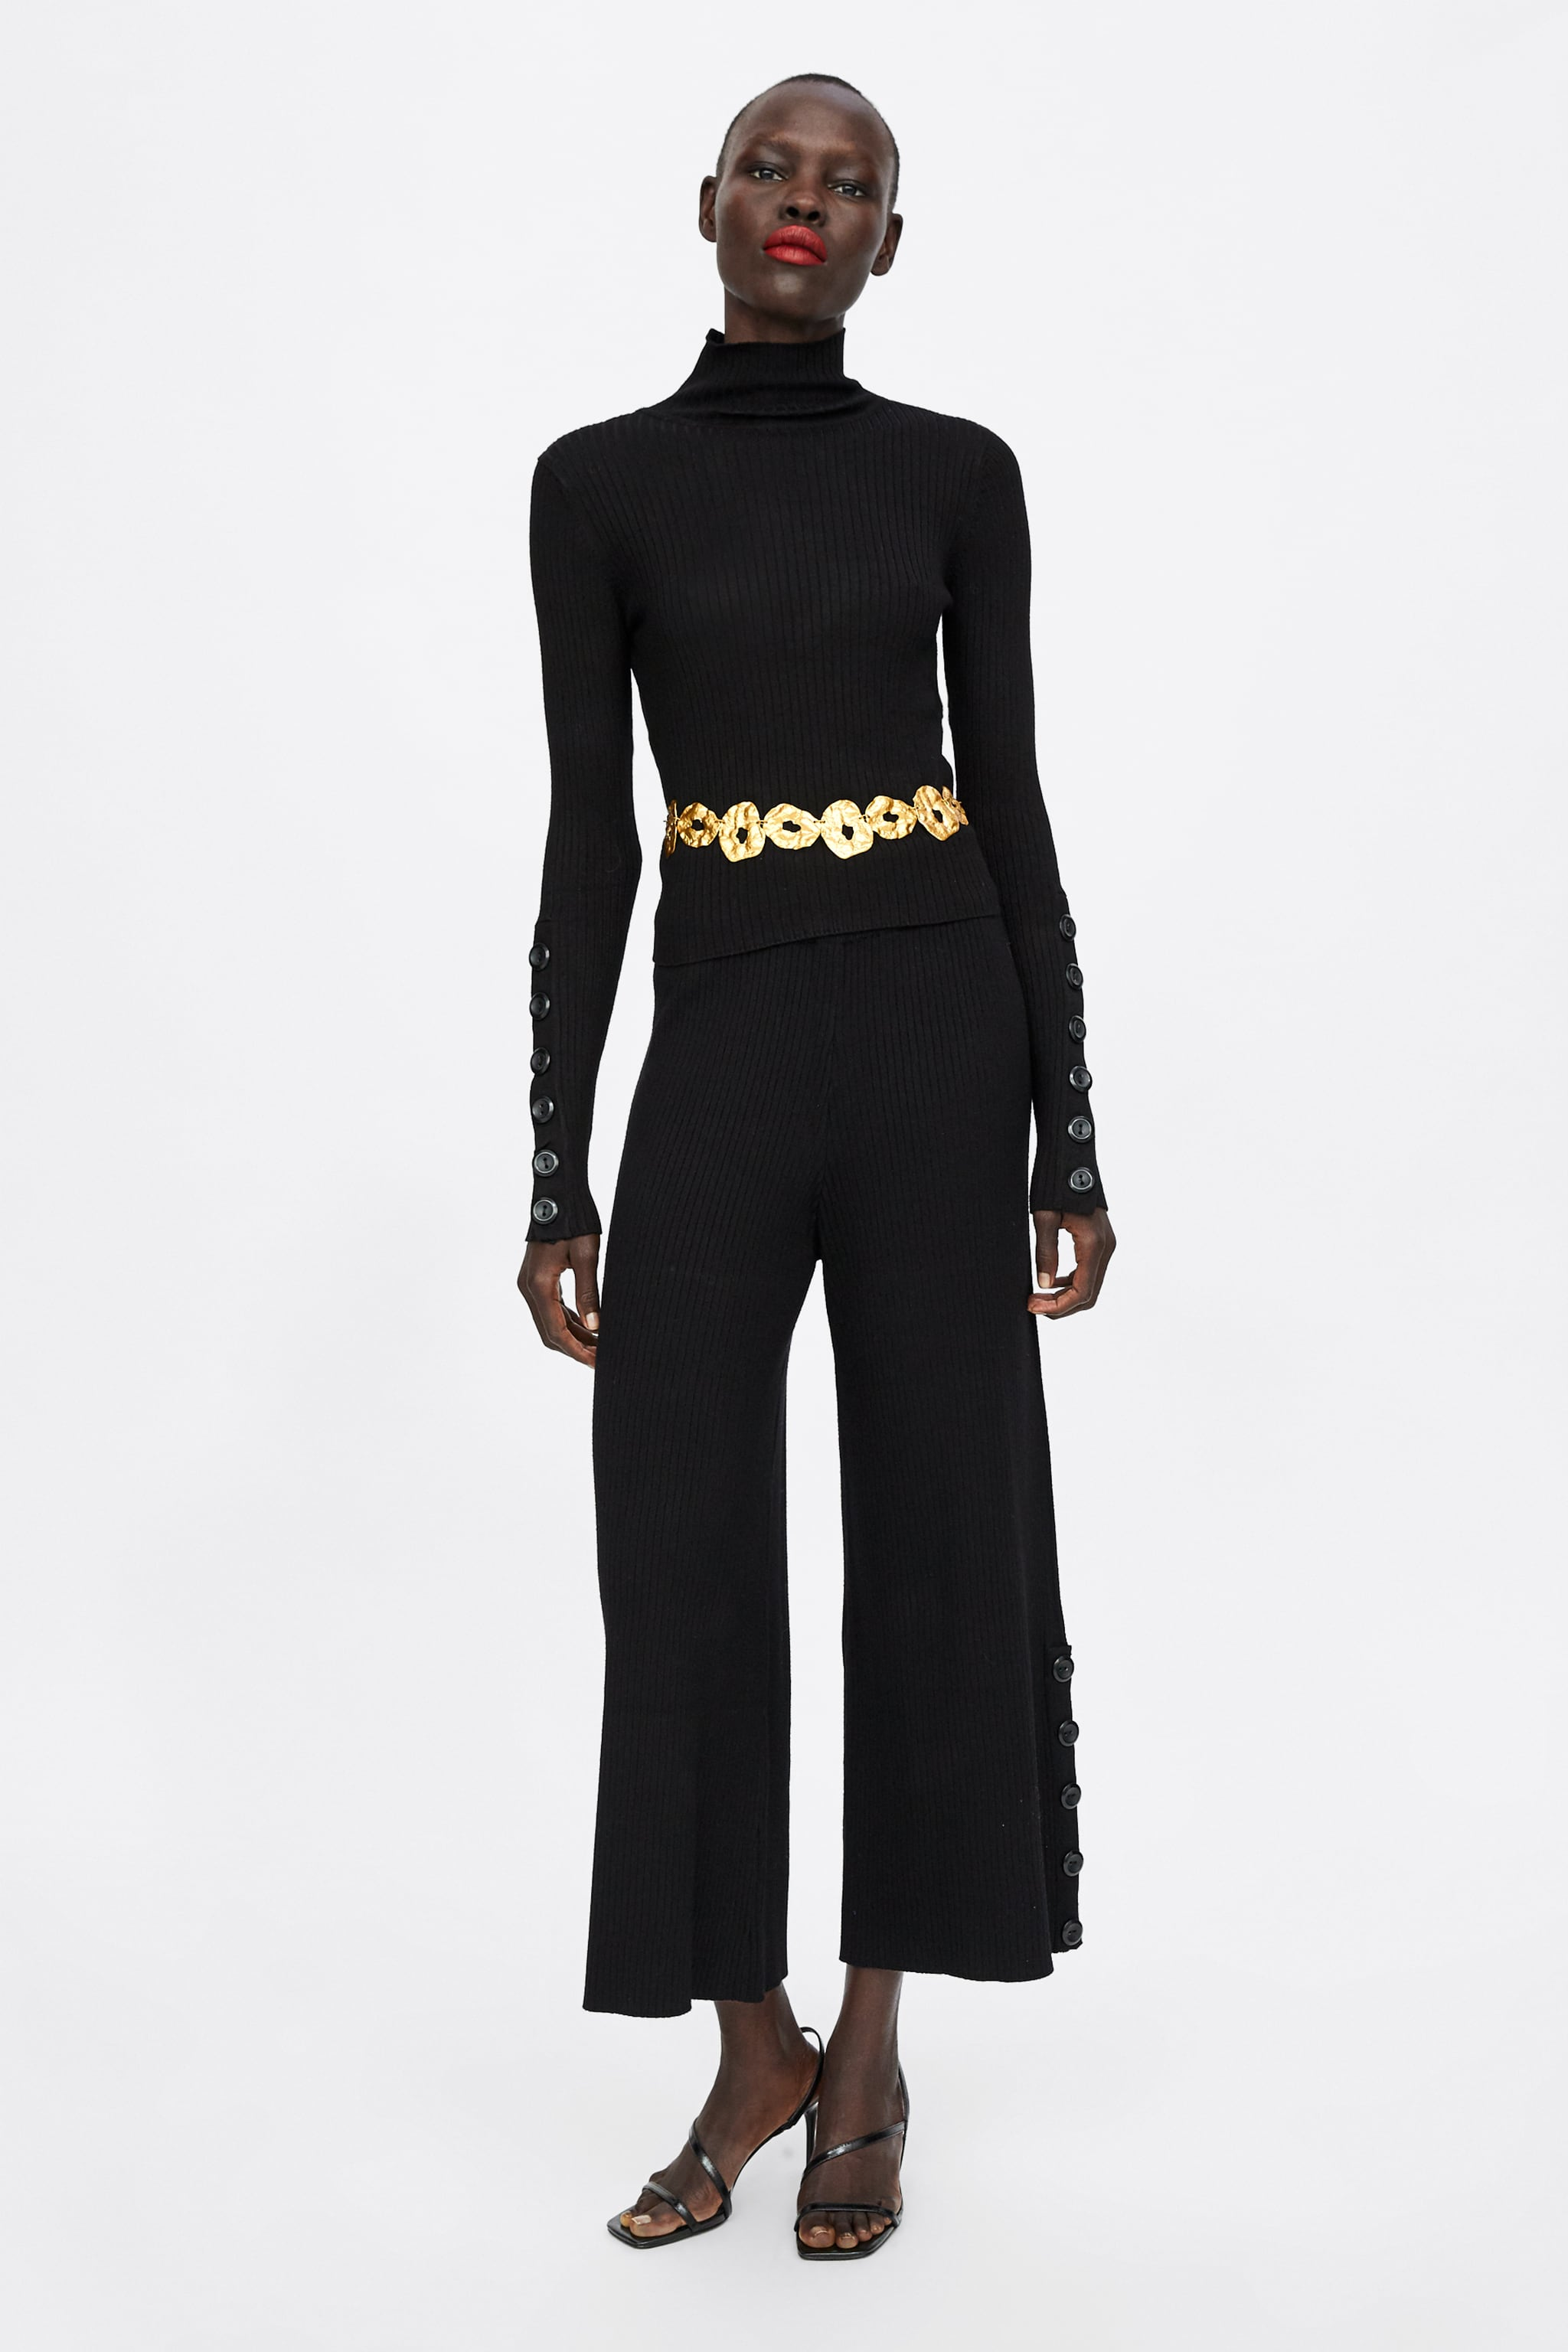 Zara TURTLENECK SWEATER WITH BUTTONS 567c9224d